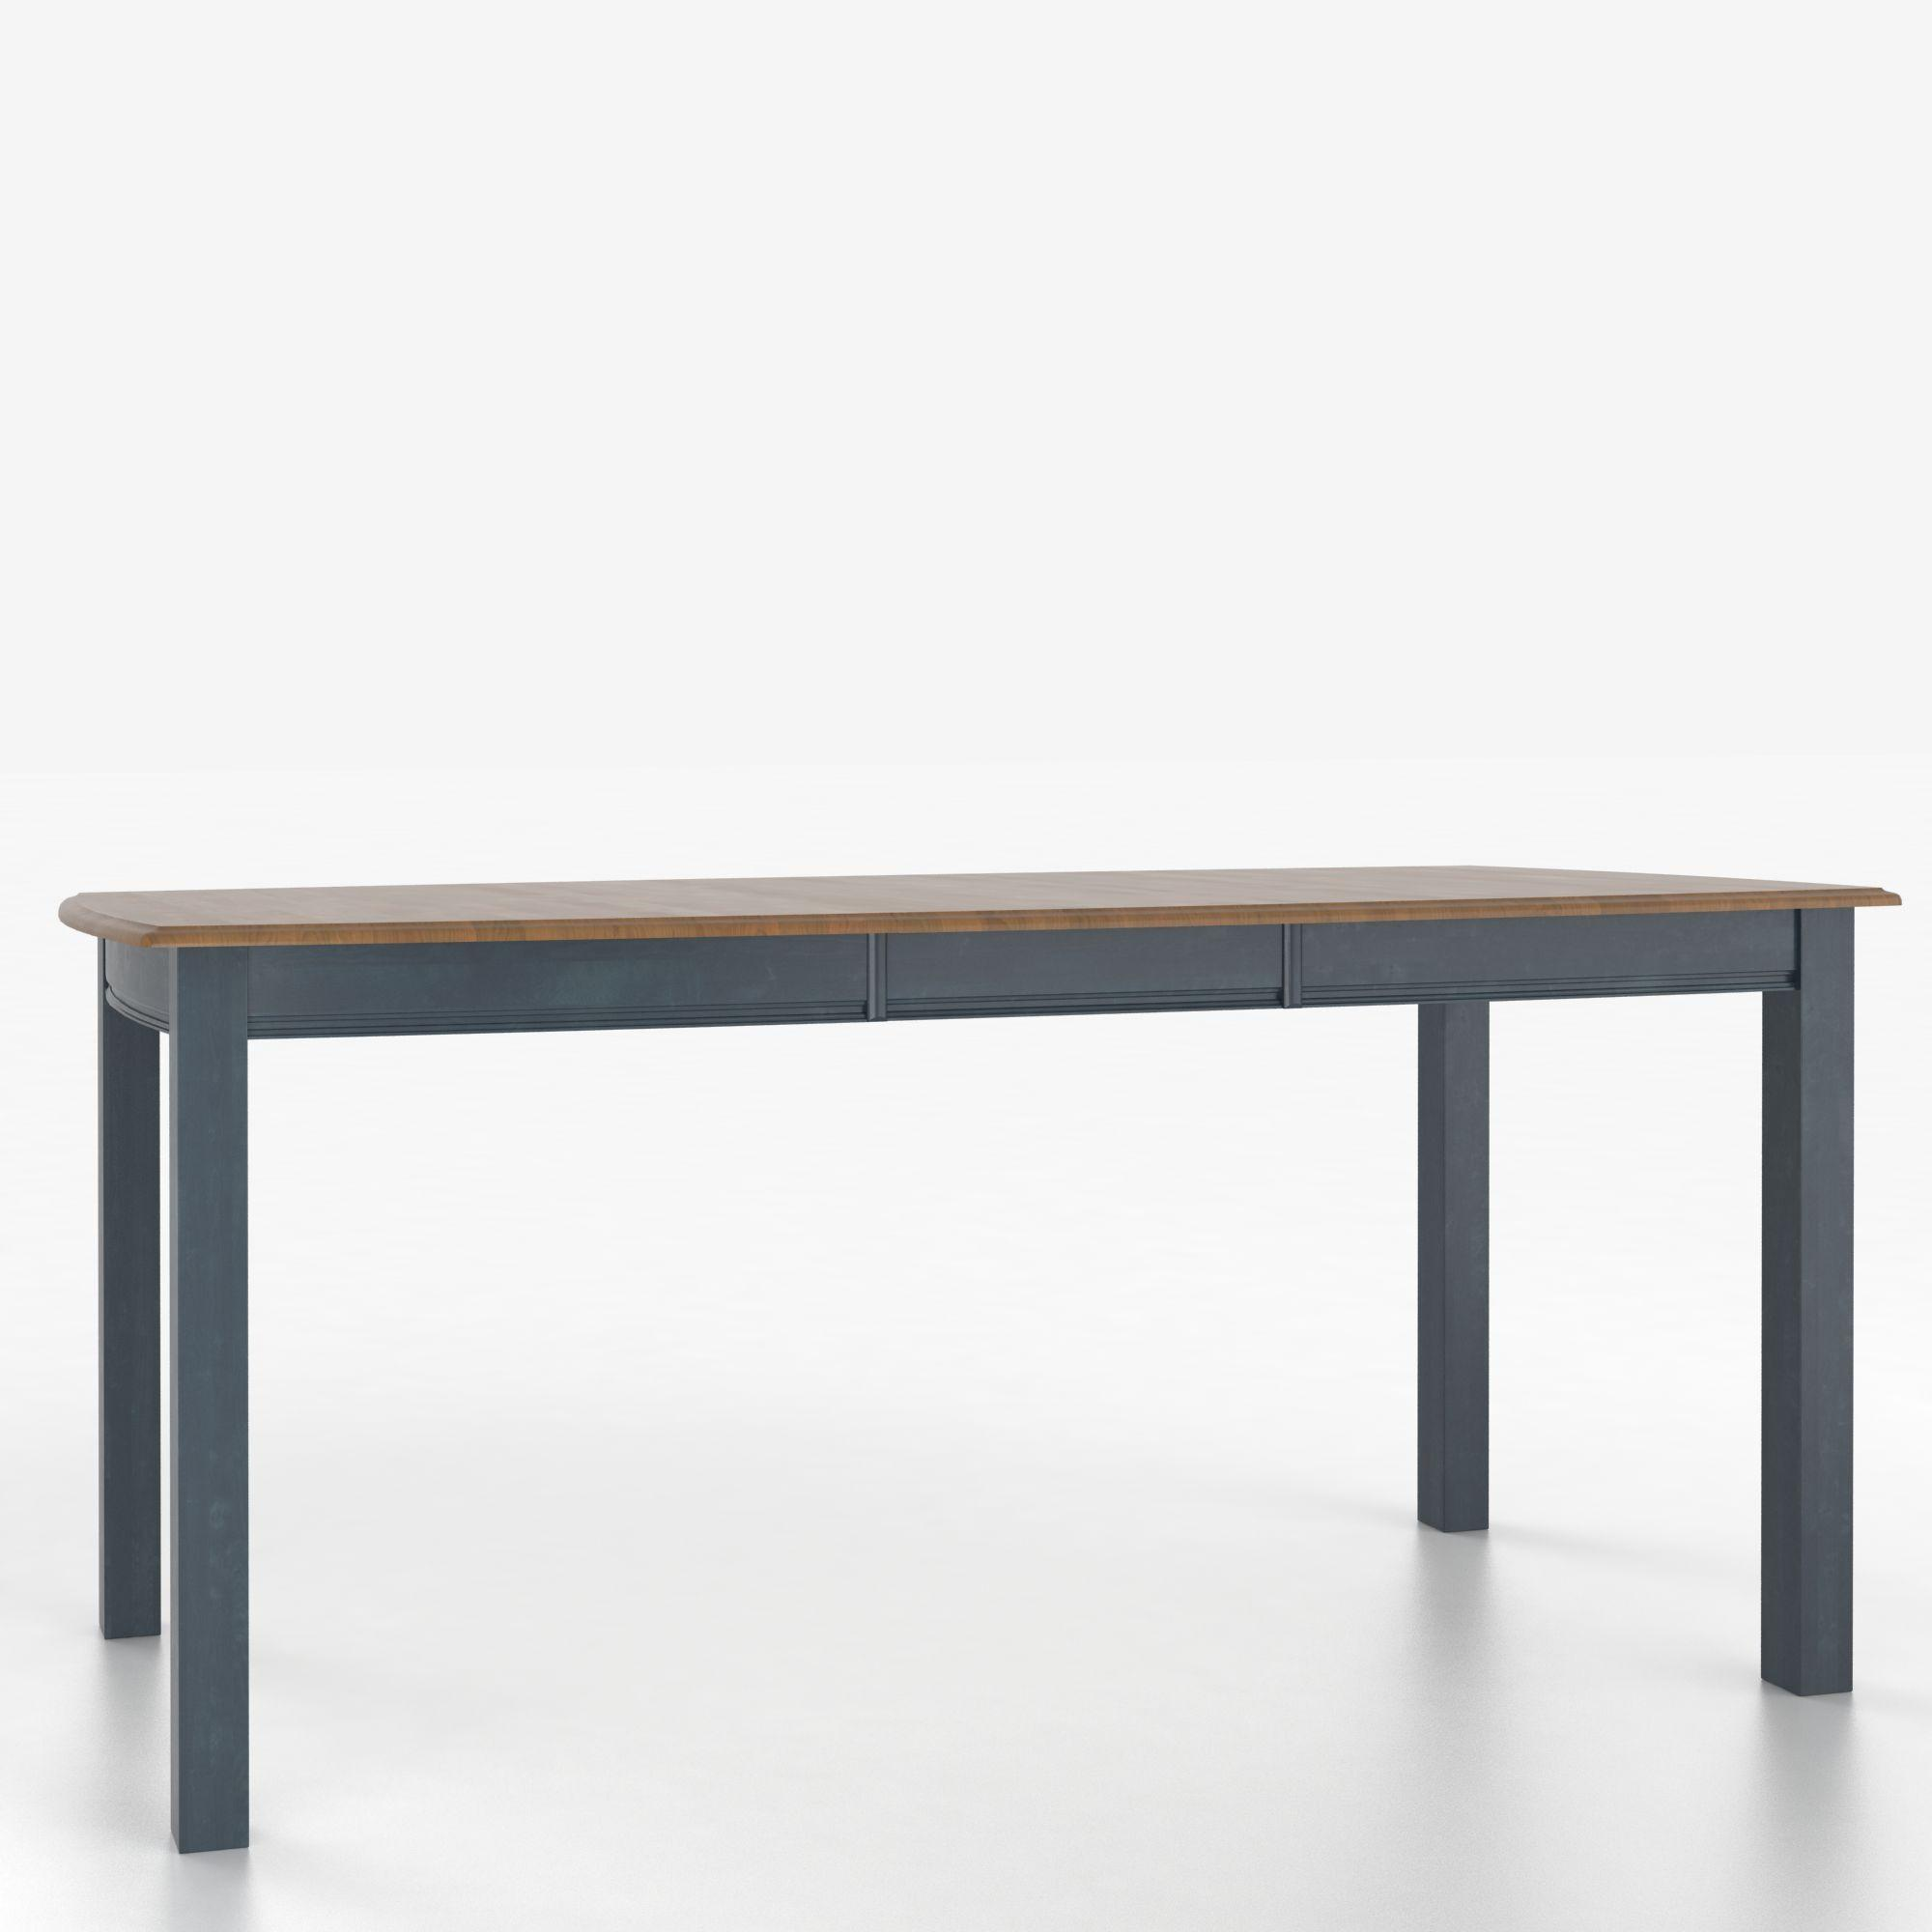 Custom Dining Counter Height Tables Customizable Boat Shape Counter Table by Canadel at Dinette Depot